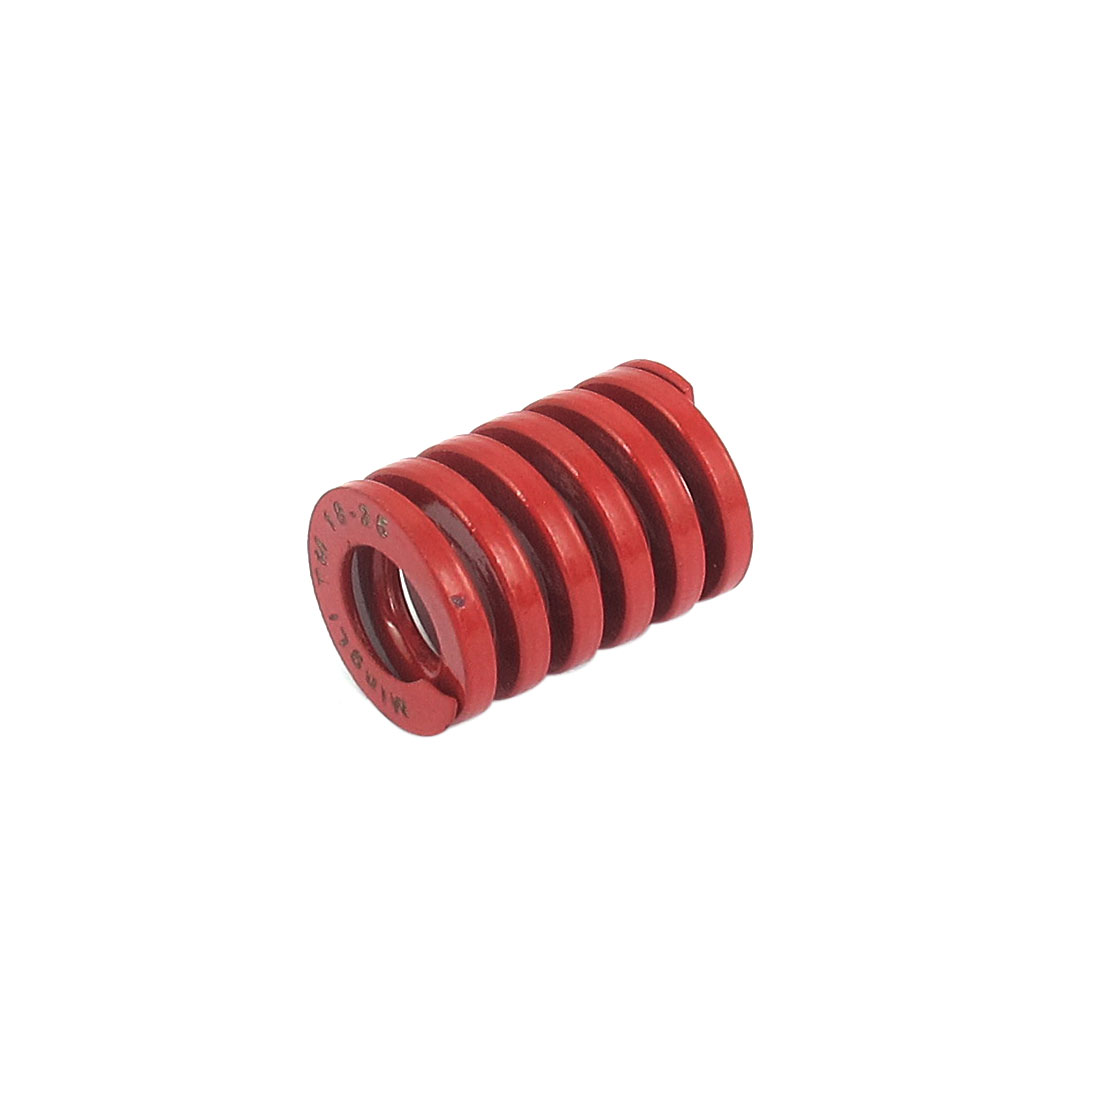 18mm OD 25mm Long Medium Load Spiral Stamping Compression Die Spring Red